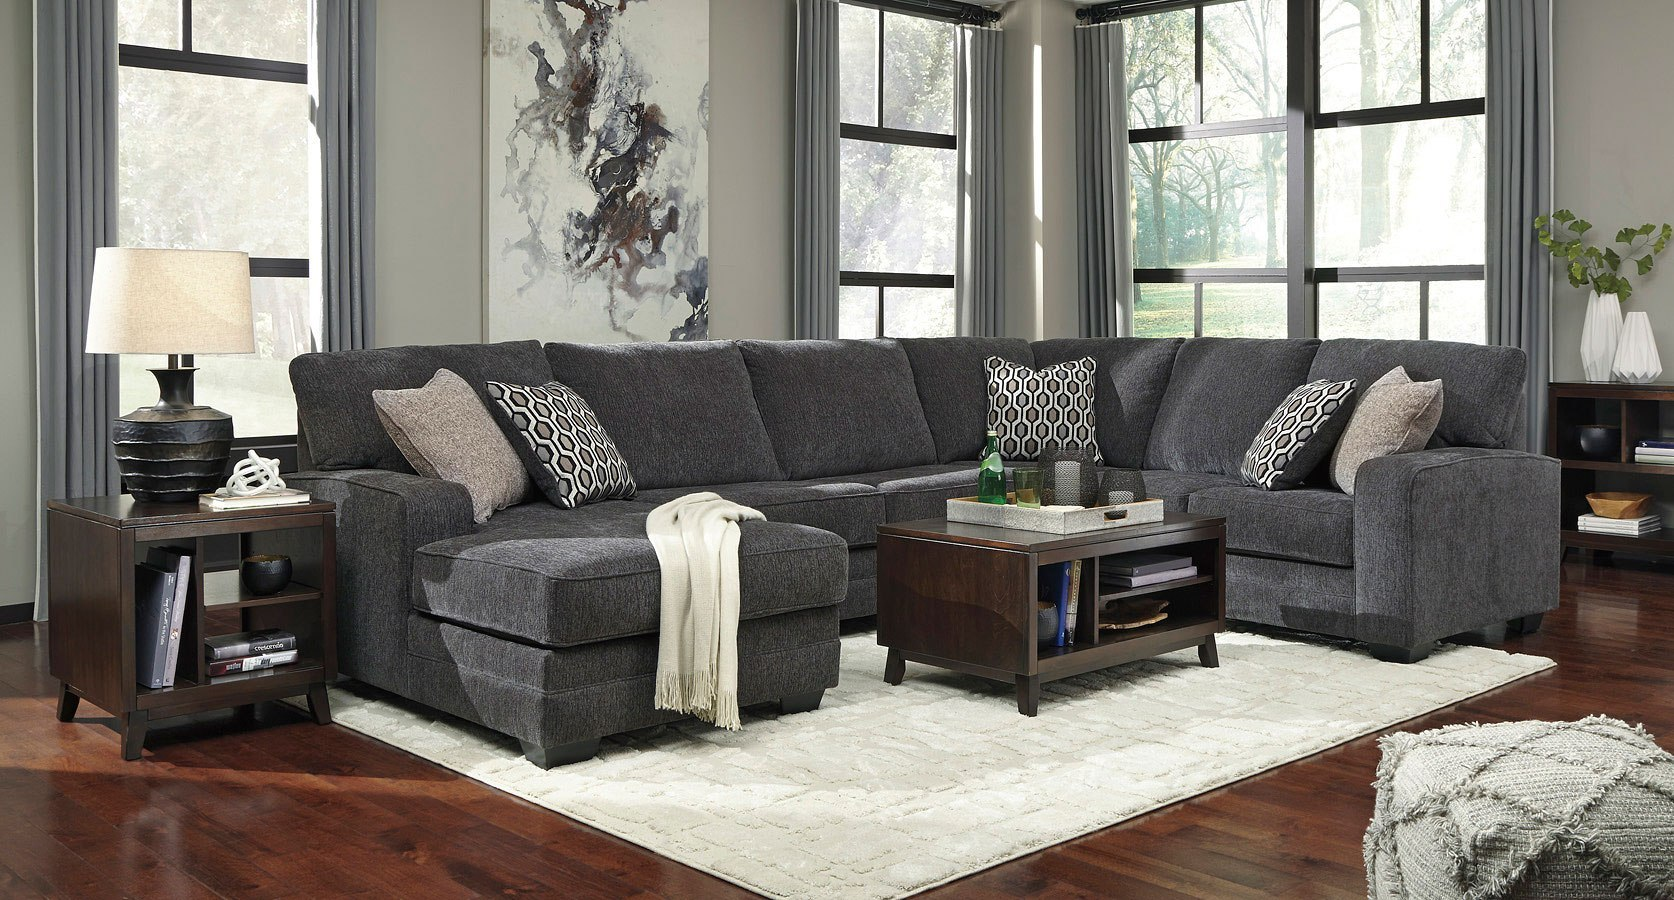 Tracling Slate Modular Sectional Set By Benchcraft 1